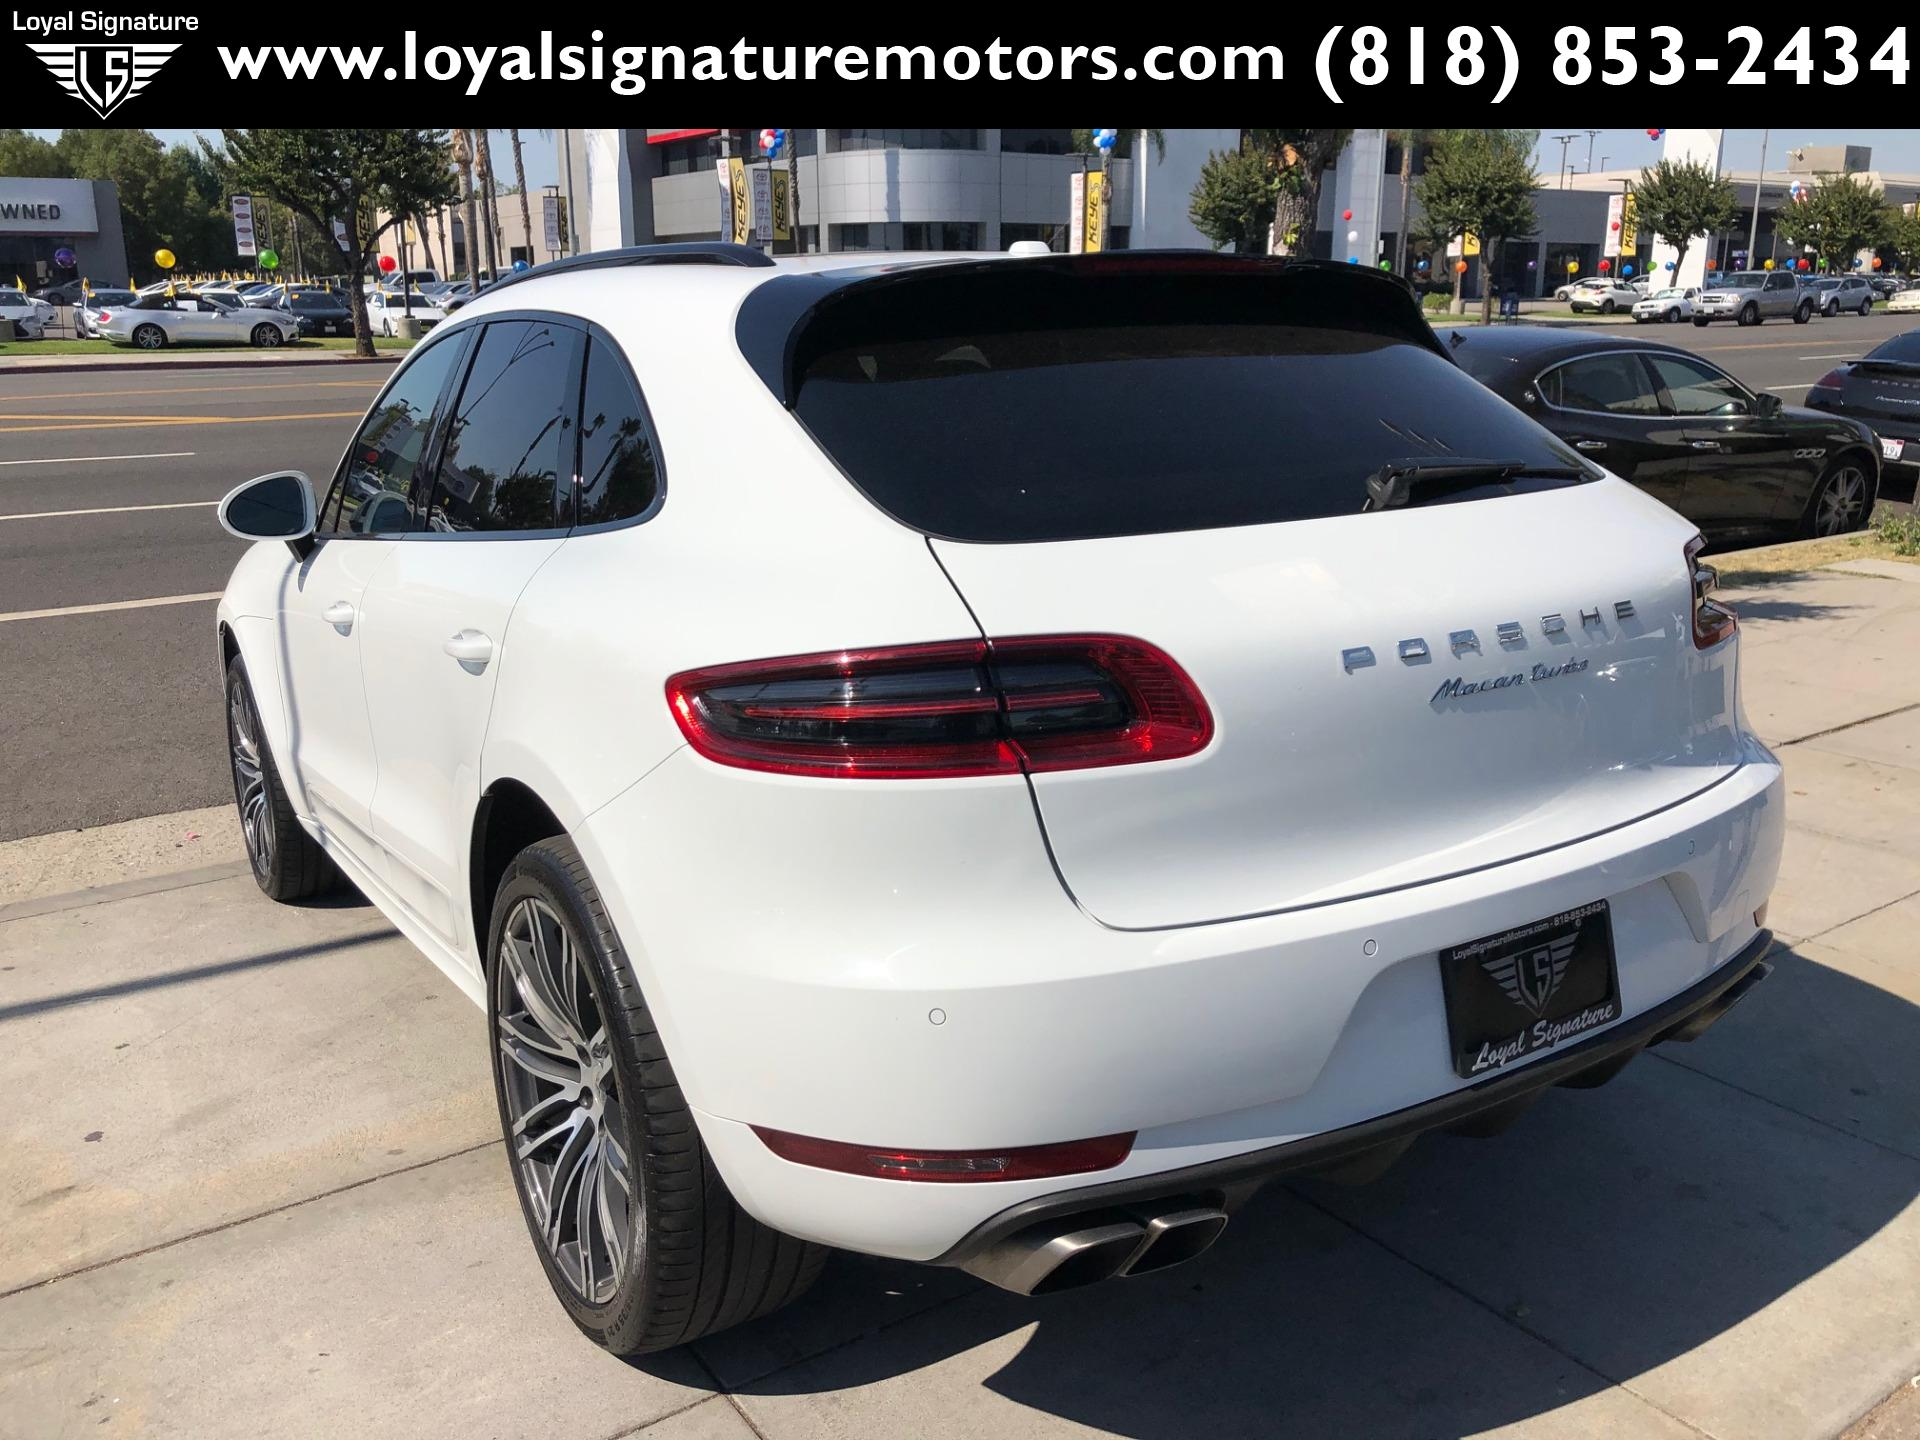 Used-2016-Porsche-Macan-Turbo